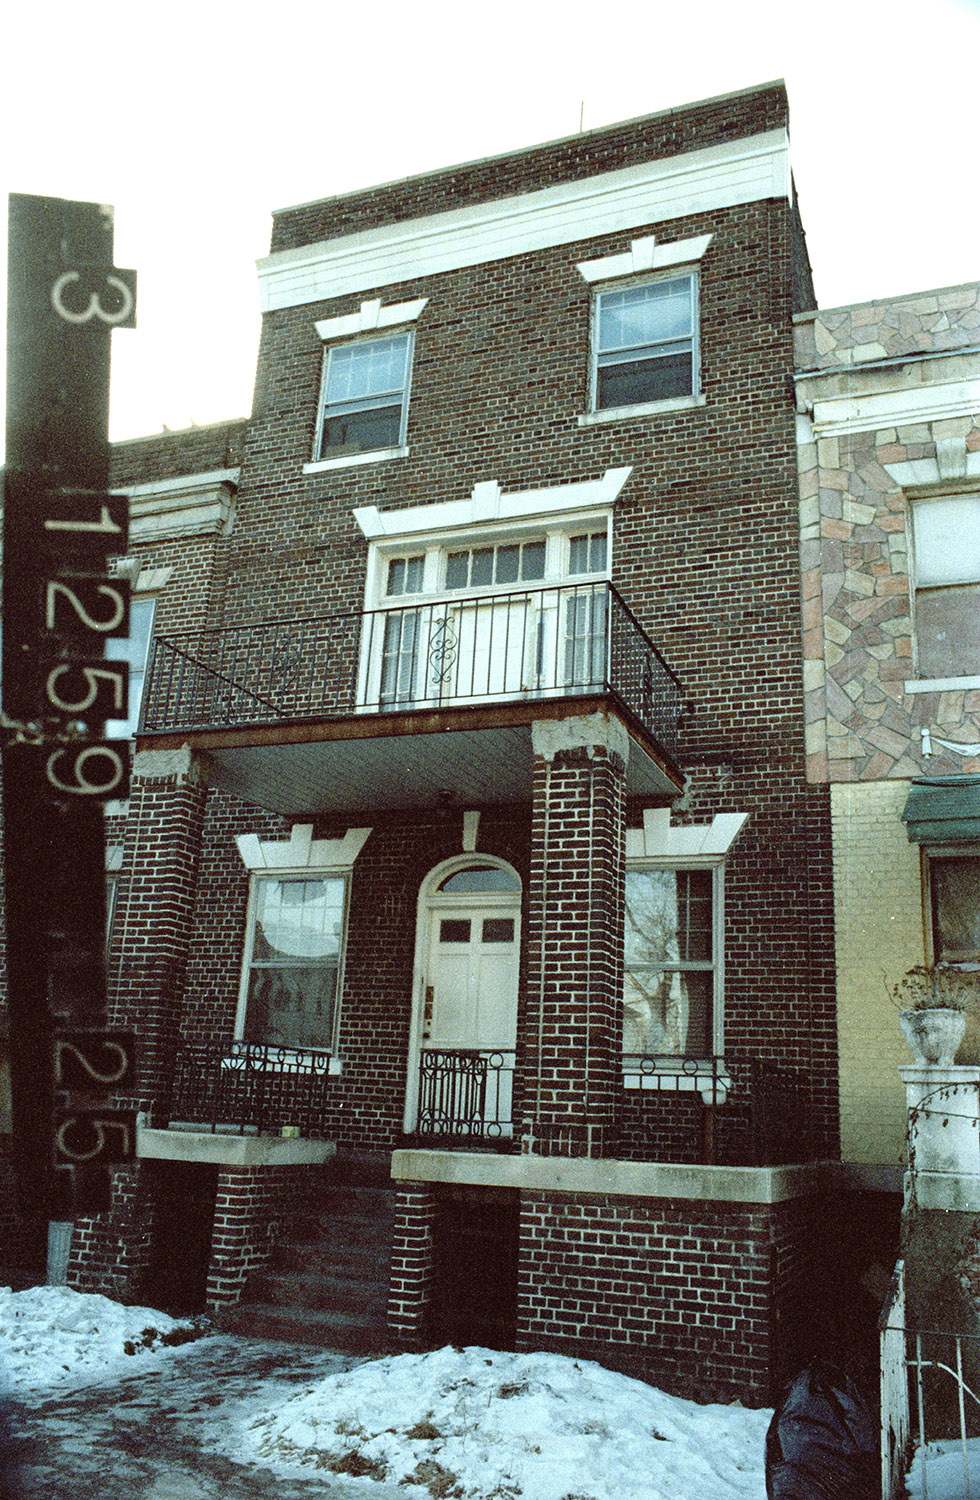 616 Lincoln Pl., mid-1980s. Photo: Department of Finance collection, NYC Municipal Archives.